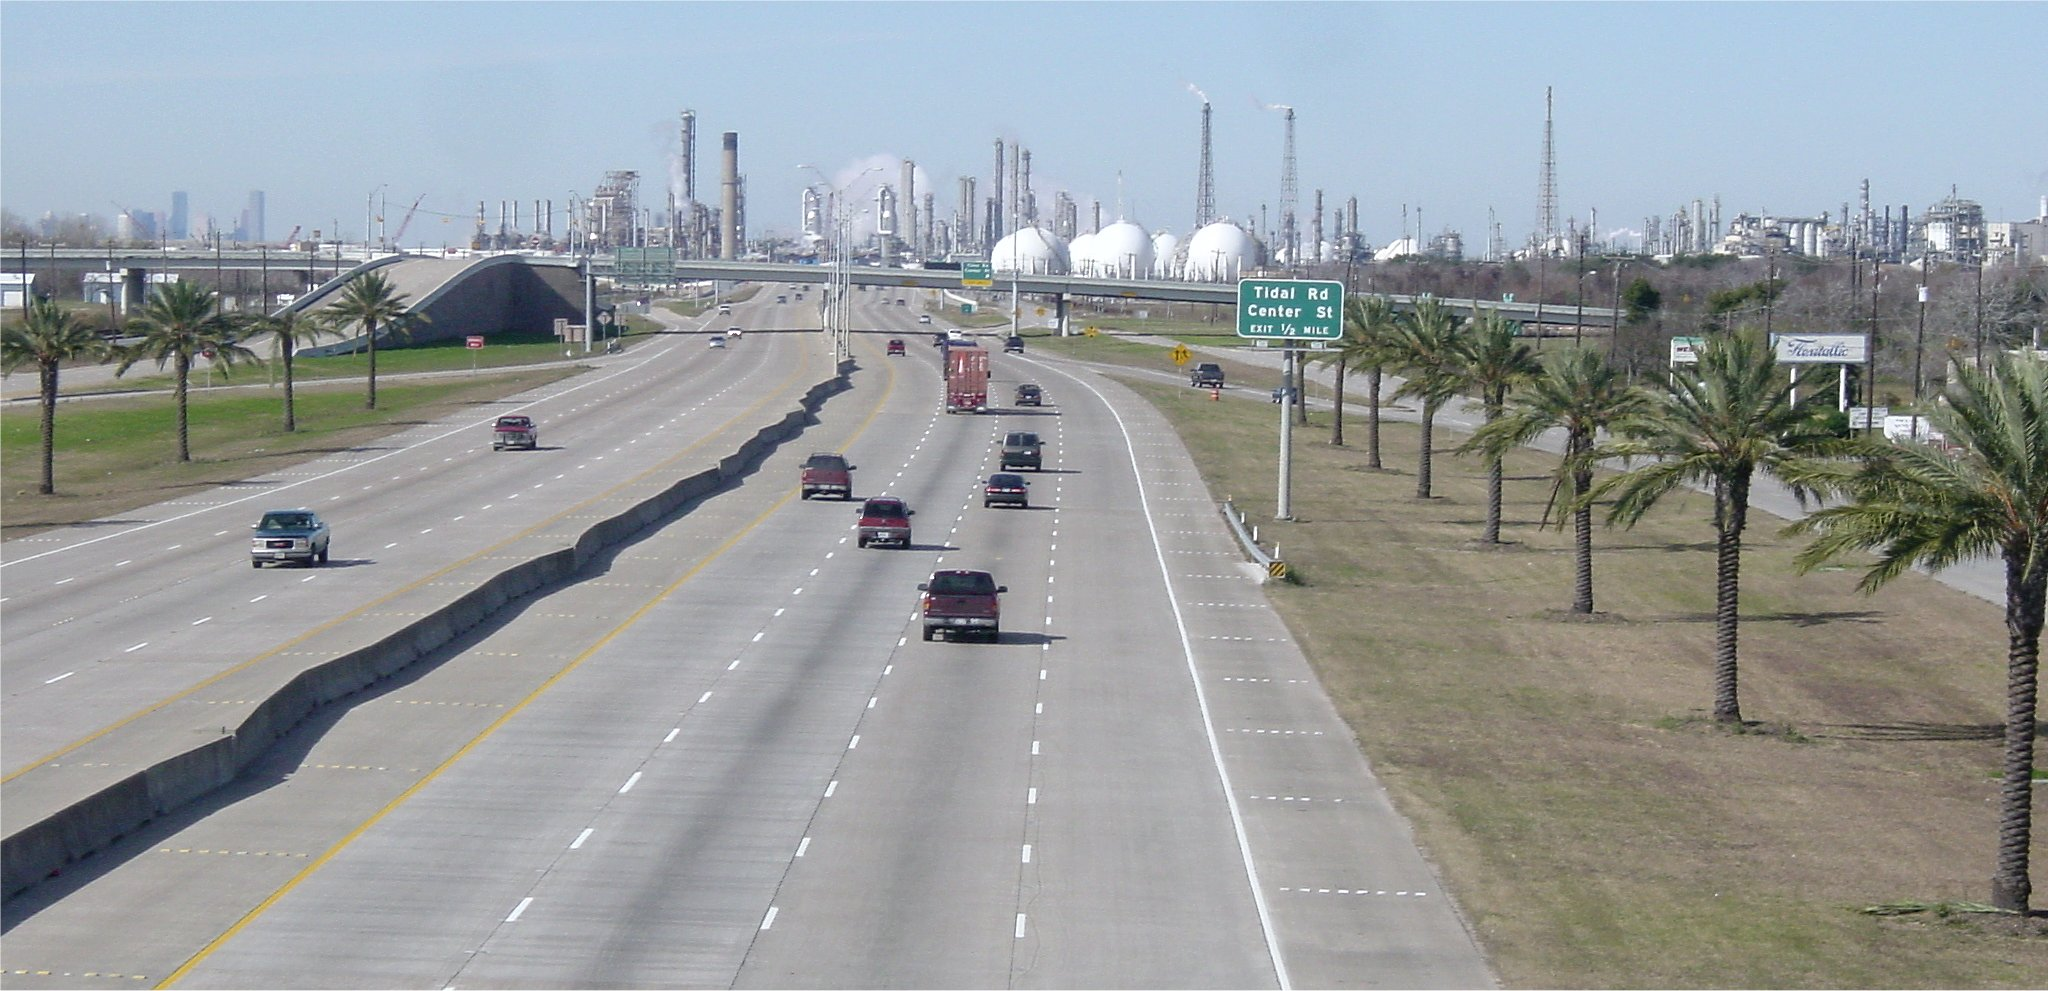 Shell Oil Refinery in Deer Park, TX